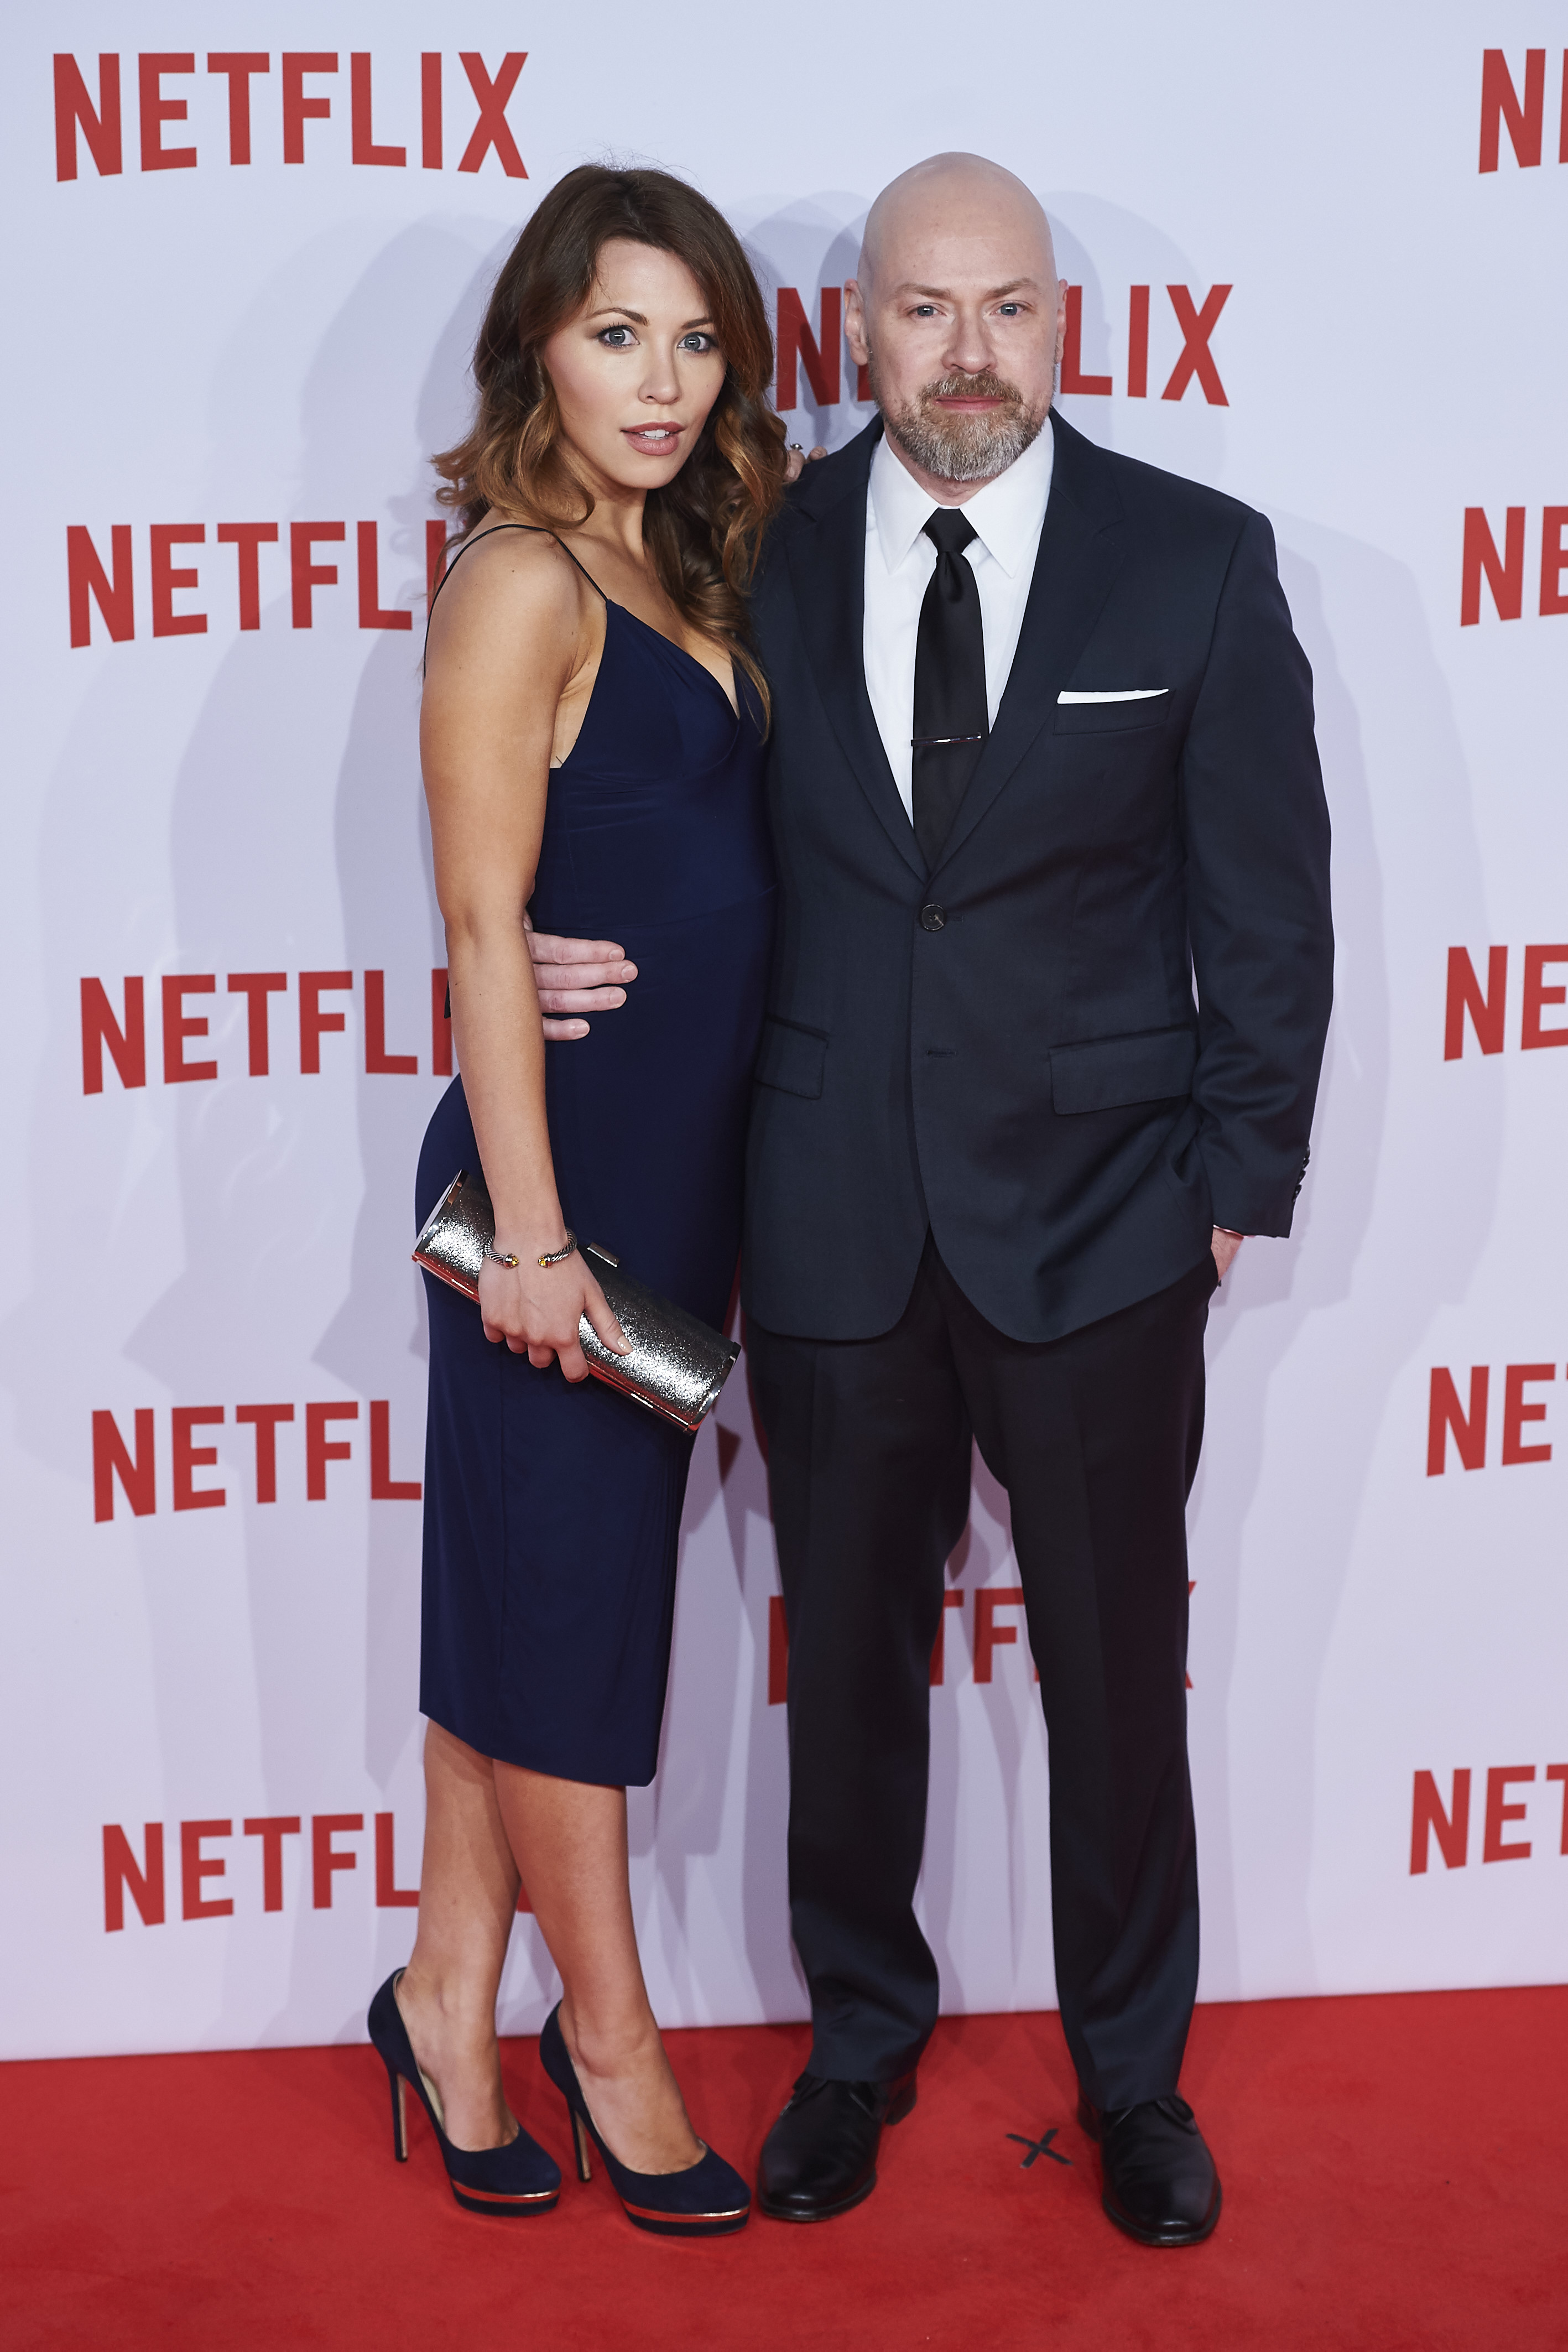 Netflix Spain launch press conference - Arrivals